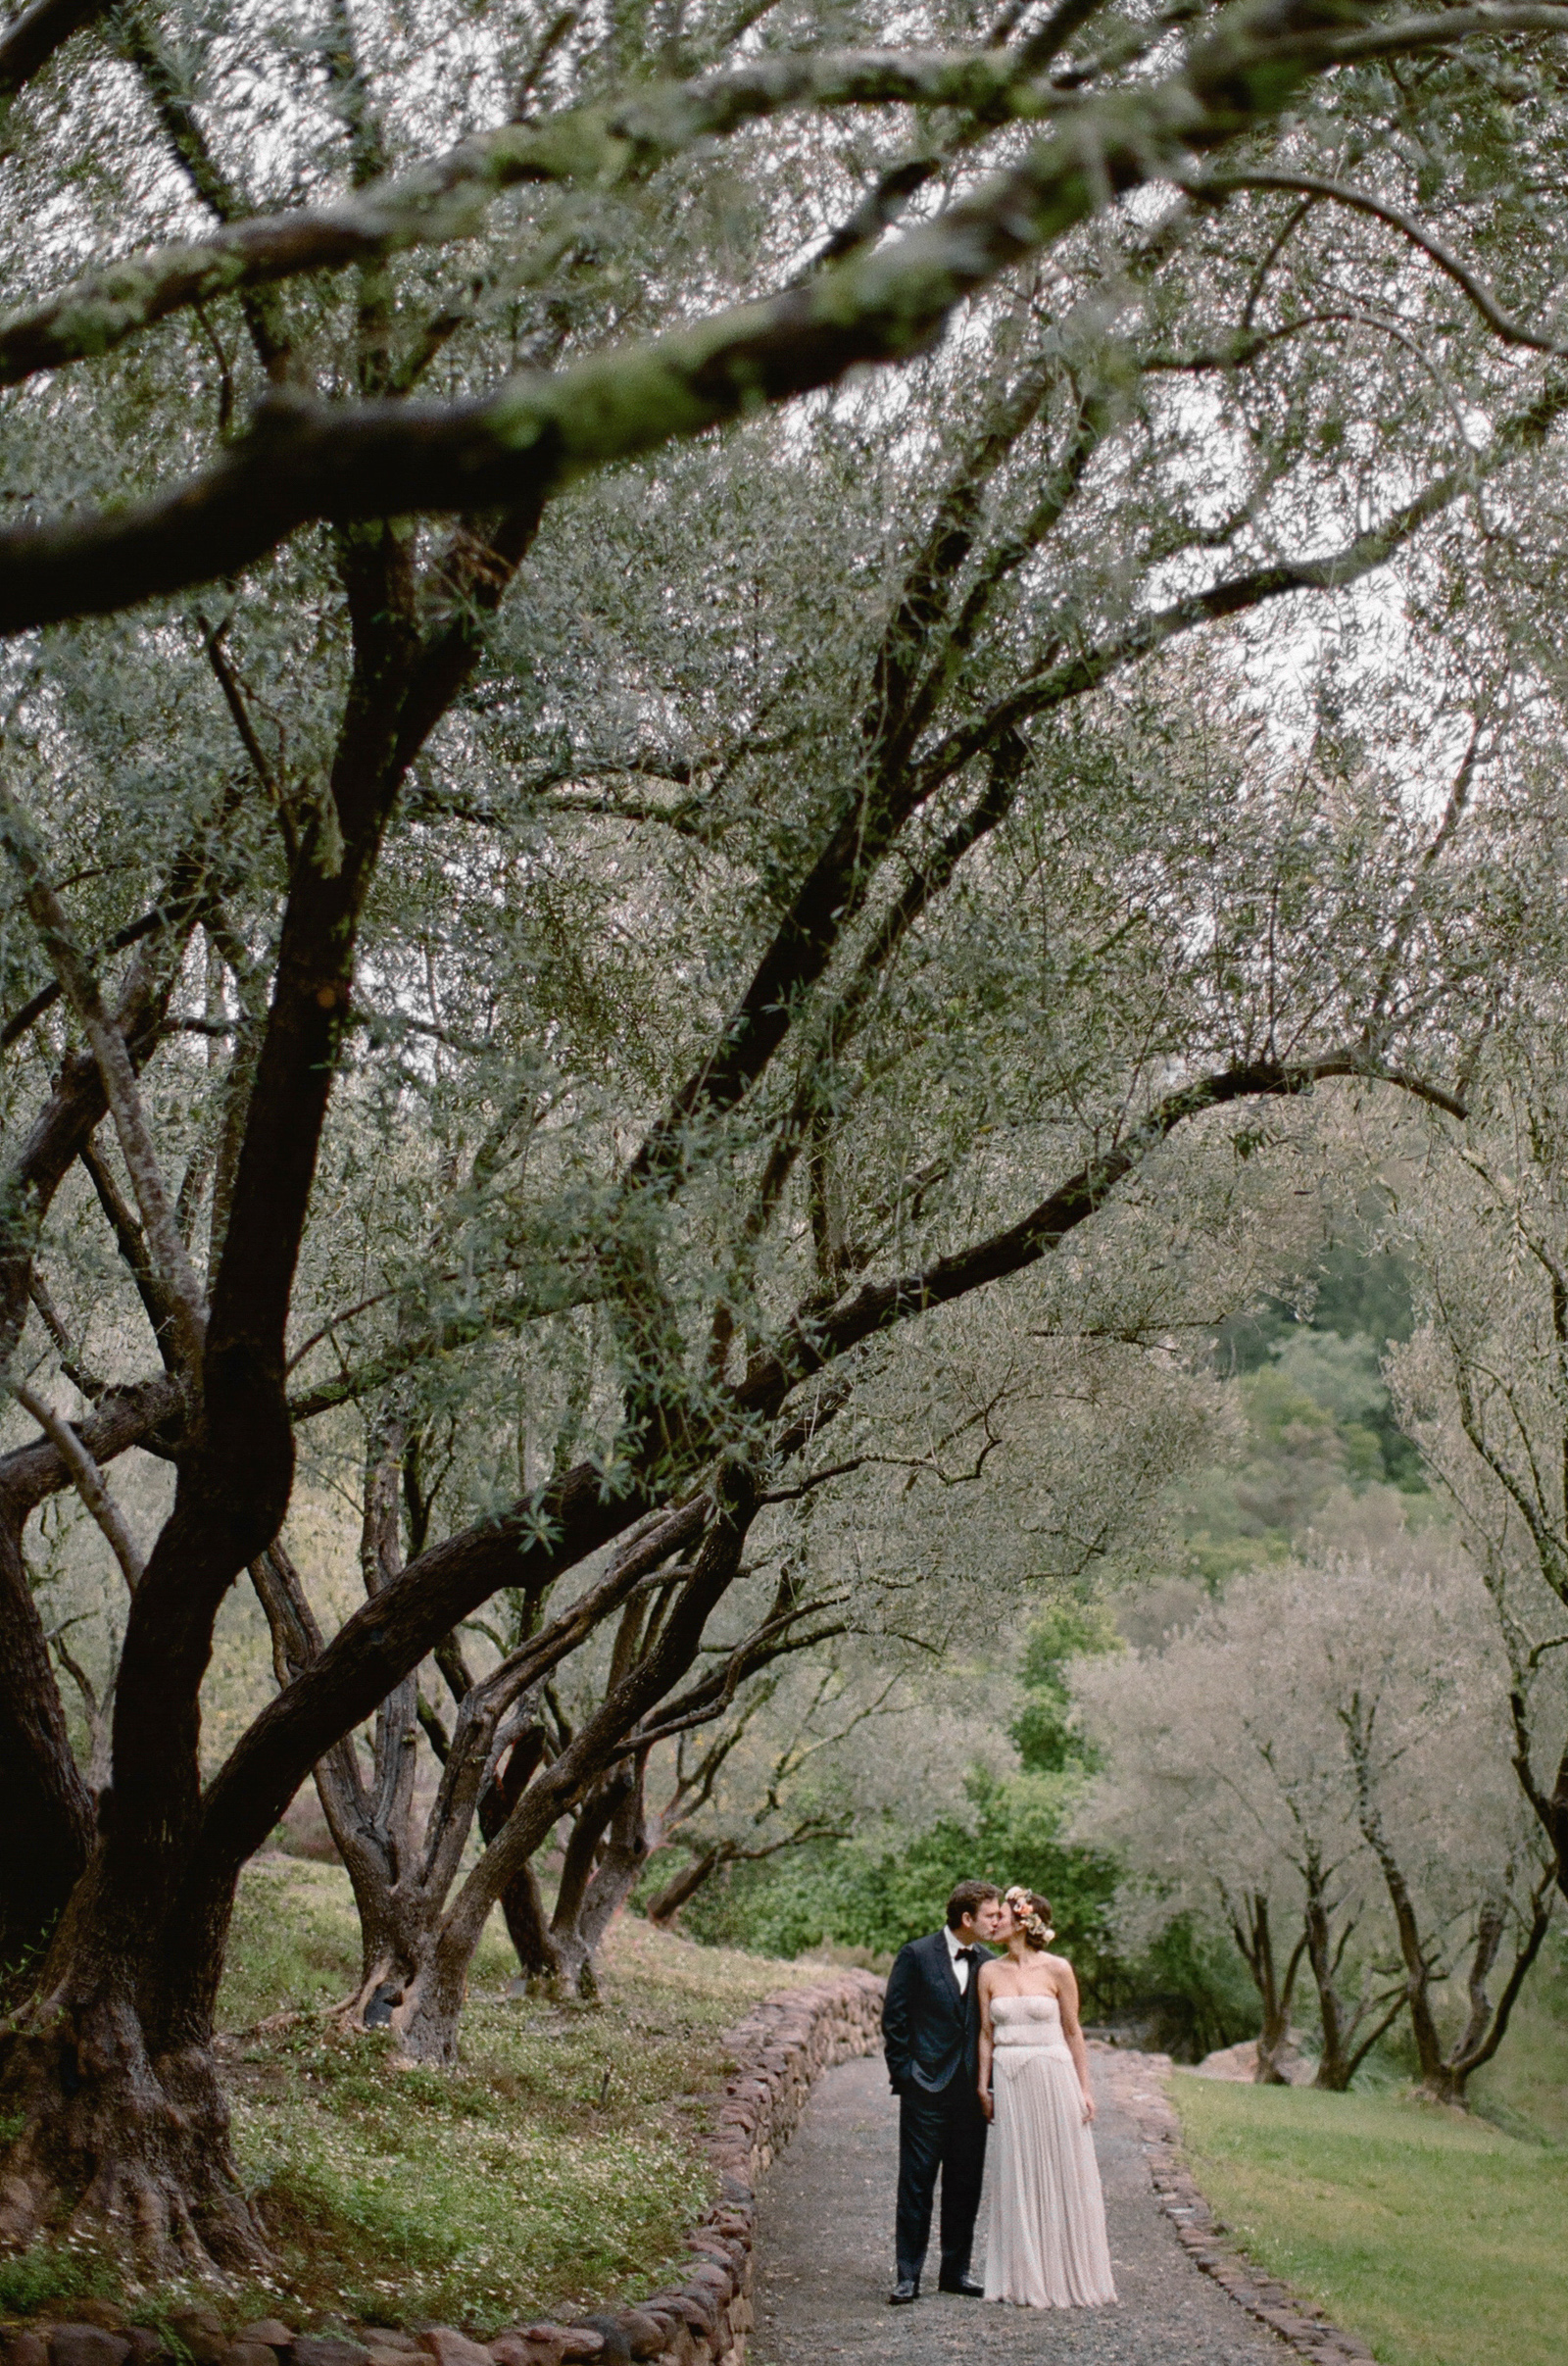 San Francisco - Napa Valley Wedding Photographer - For the Love of It-007.jpg